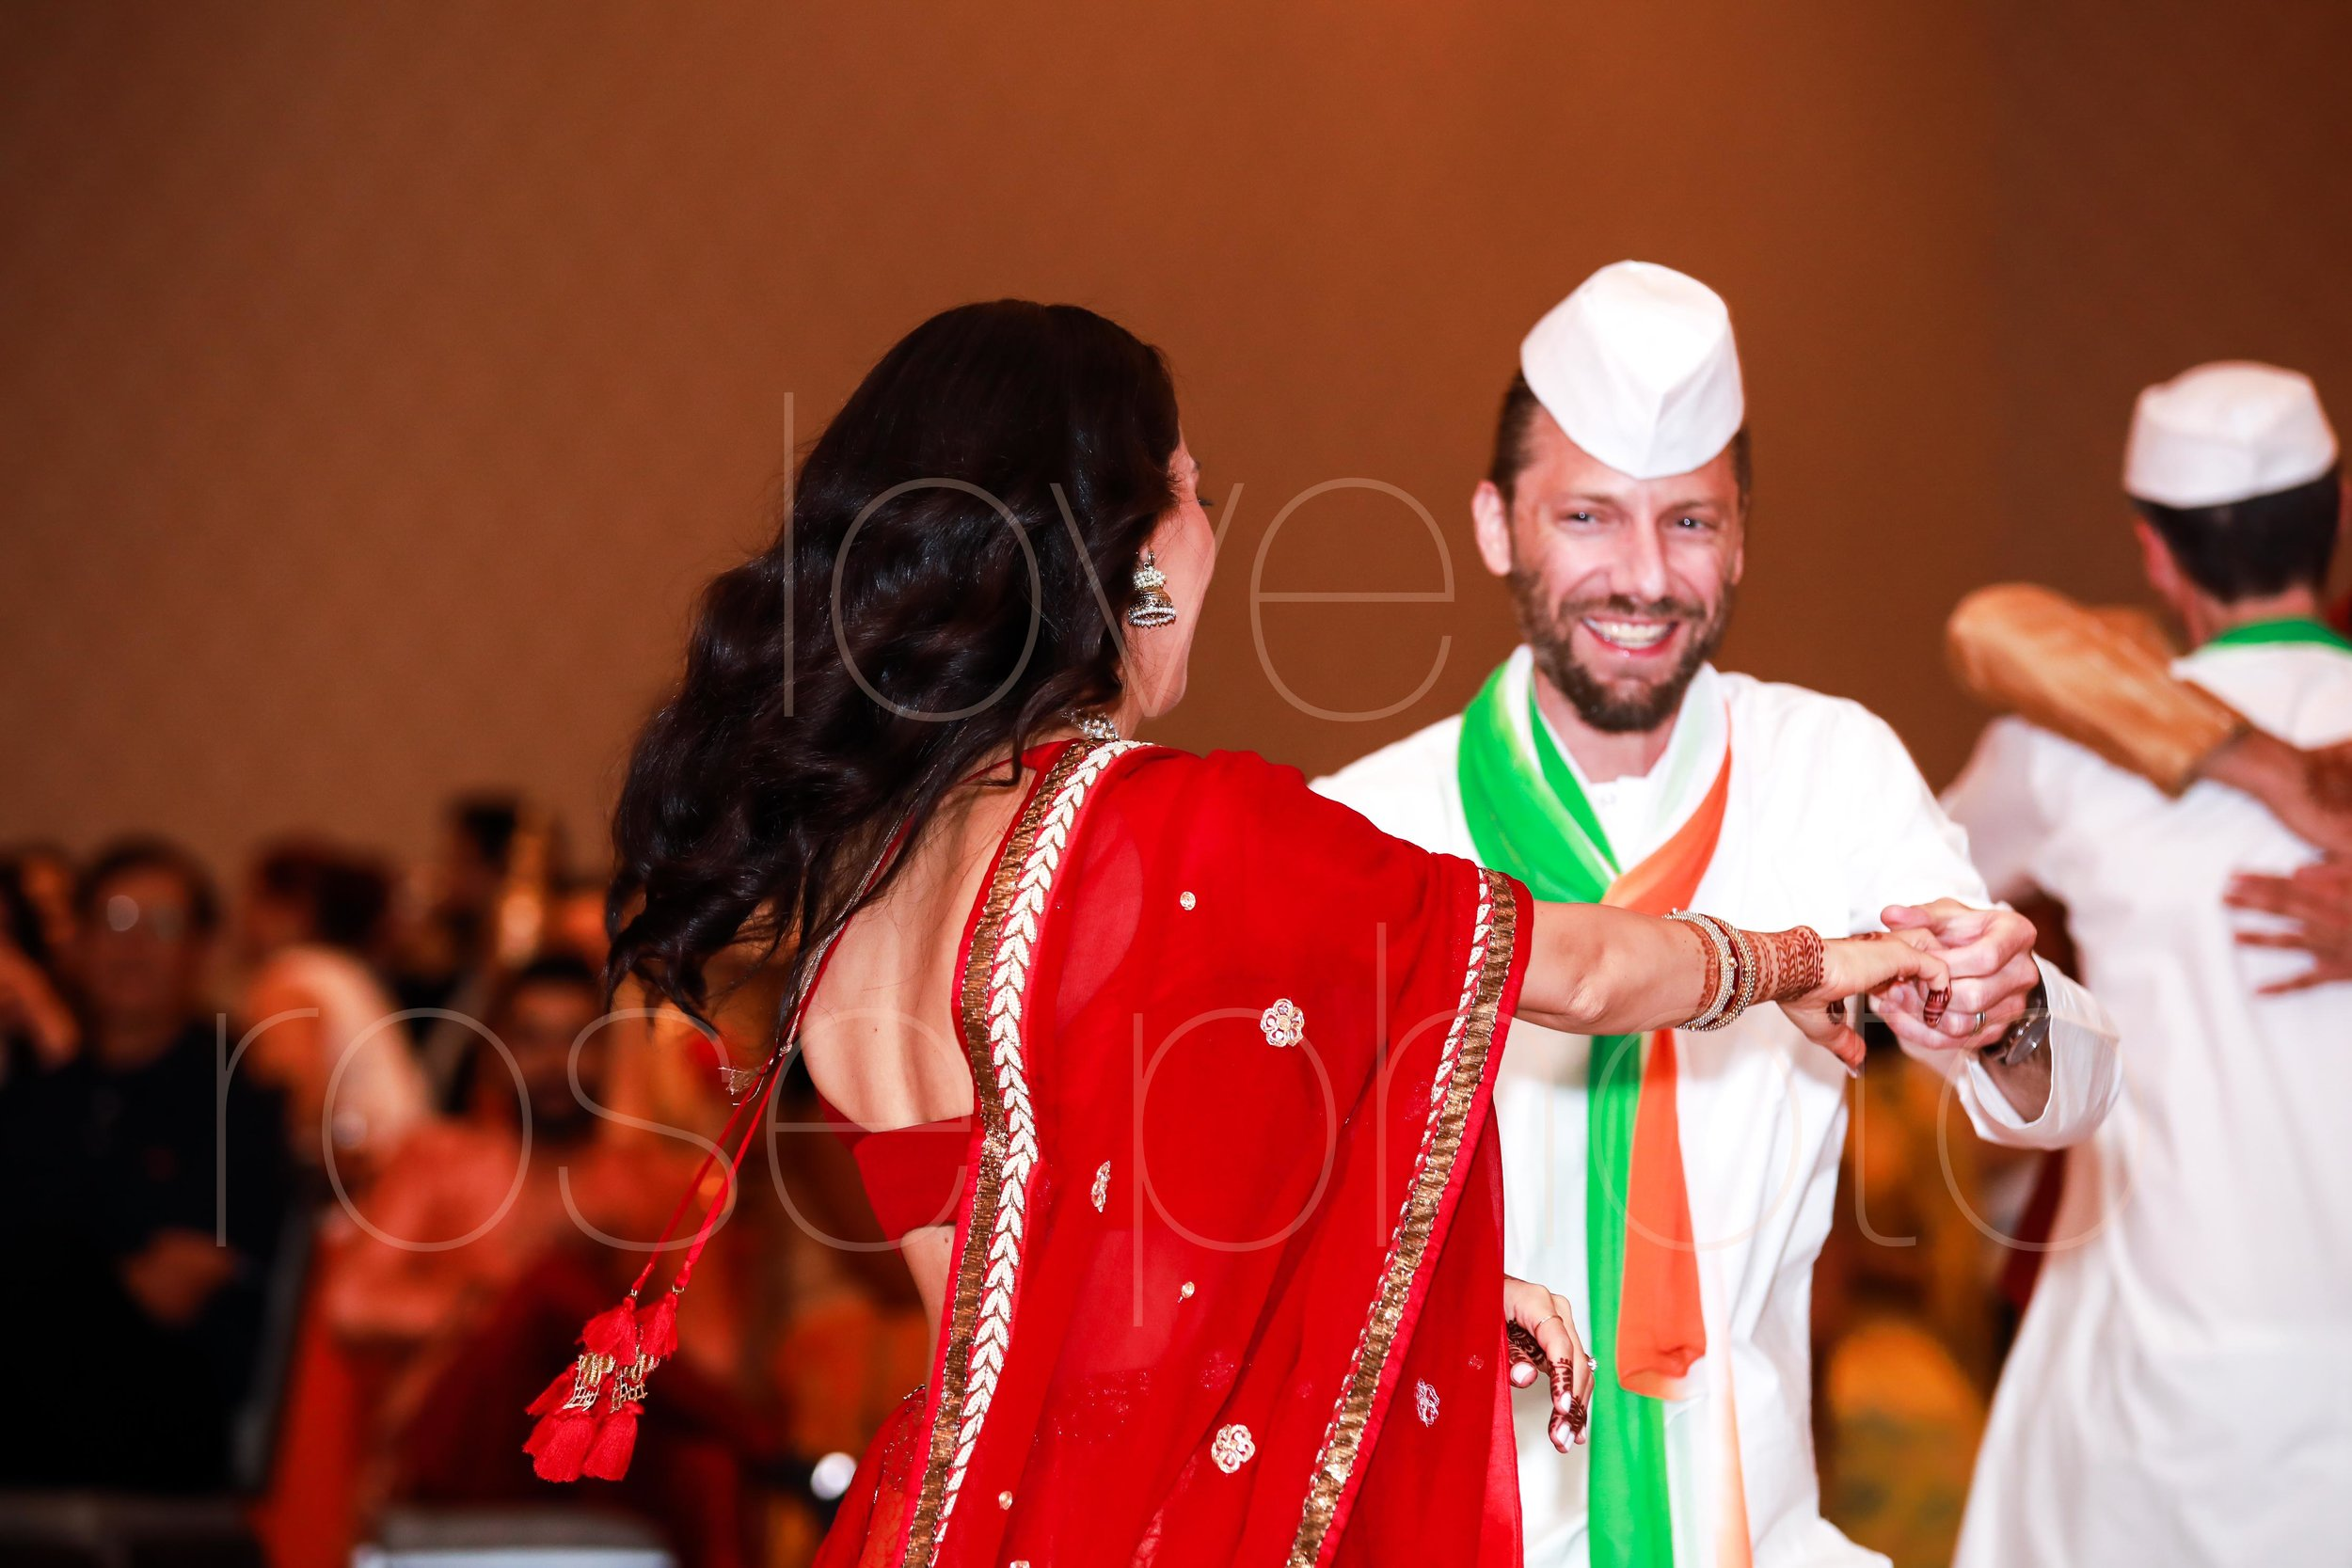 best chicago indian wedding photographer rose photo video collective-36.jpg